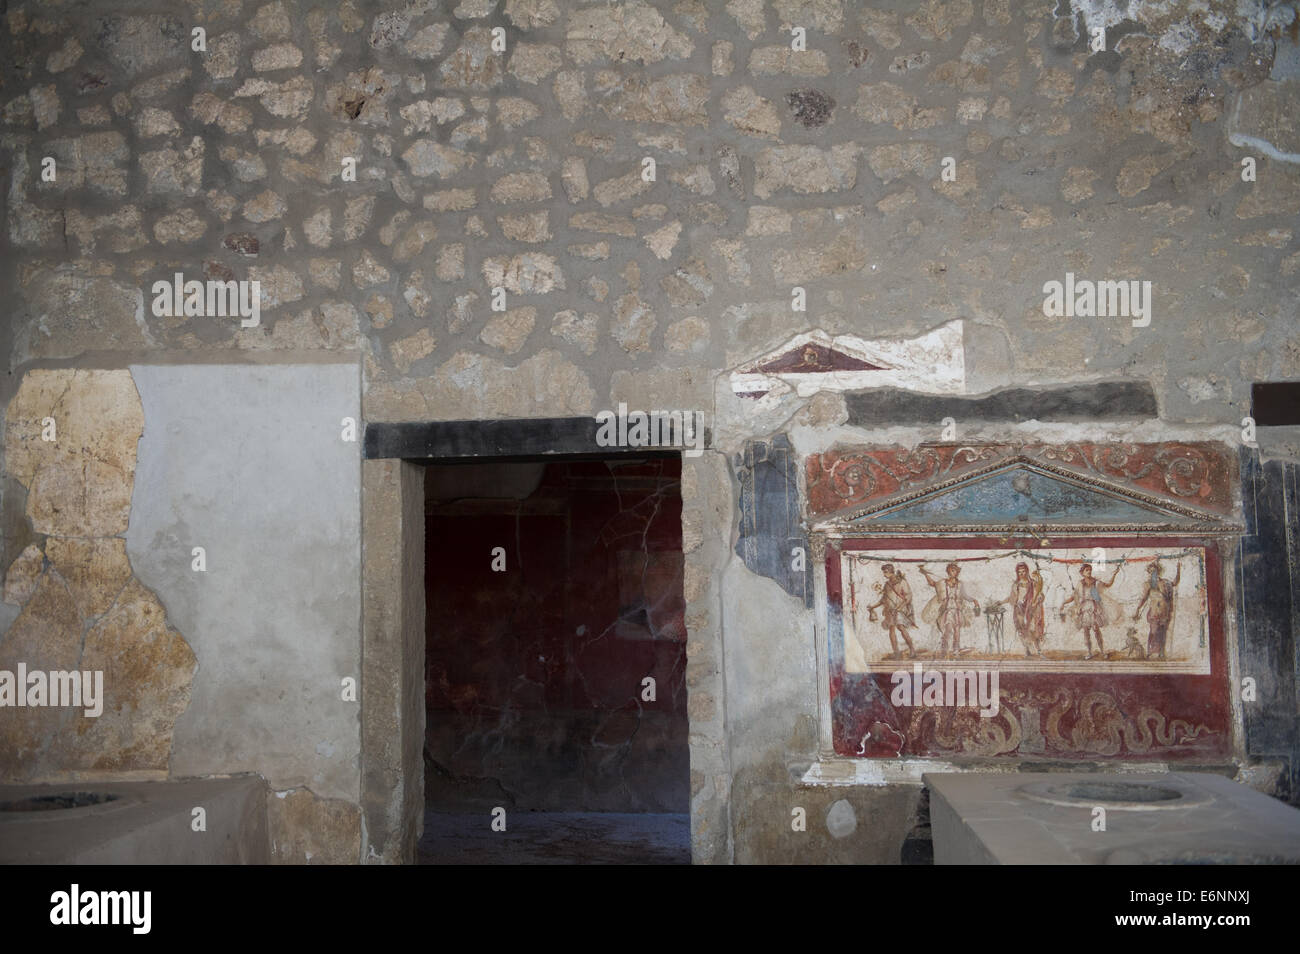 Internal wall drawings or paintings in the ruined city of Pompeii. Stock Photo